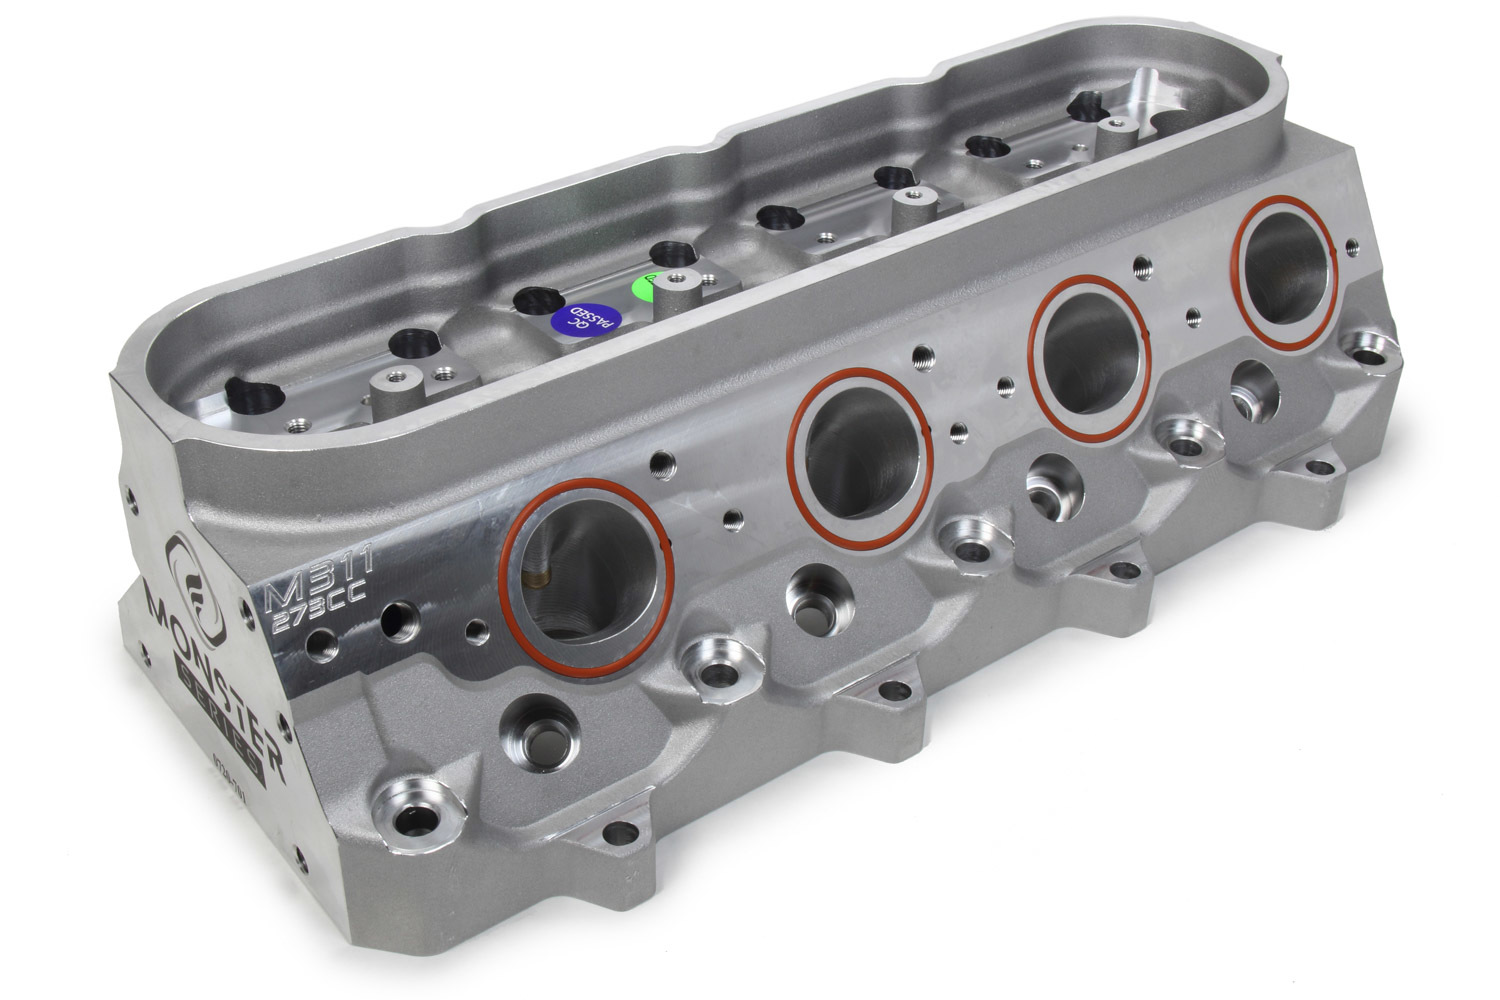 Frankenstein Engine Dynamics 113001 Cylinder Head, M311, Bare, 2.165 / 1.600 in Valve, 273 cc Intake, 71 cc Chamber, Aluminum, LS3, GM LS-Series, Each